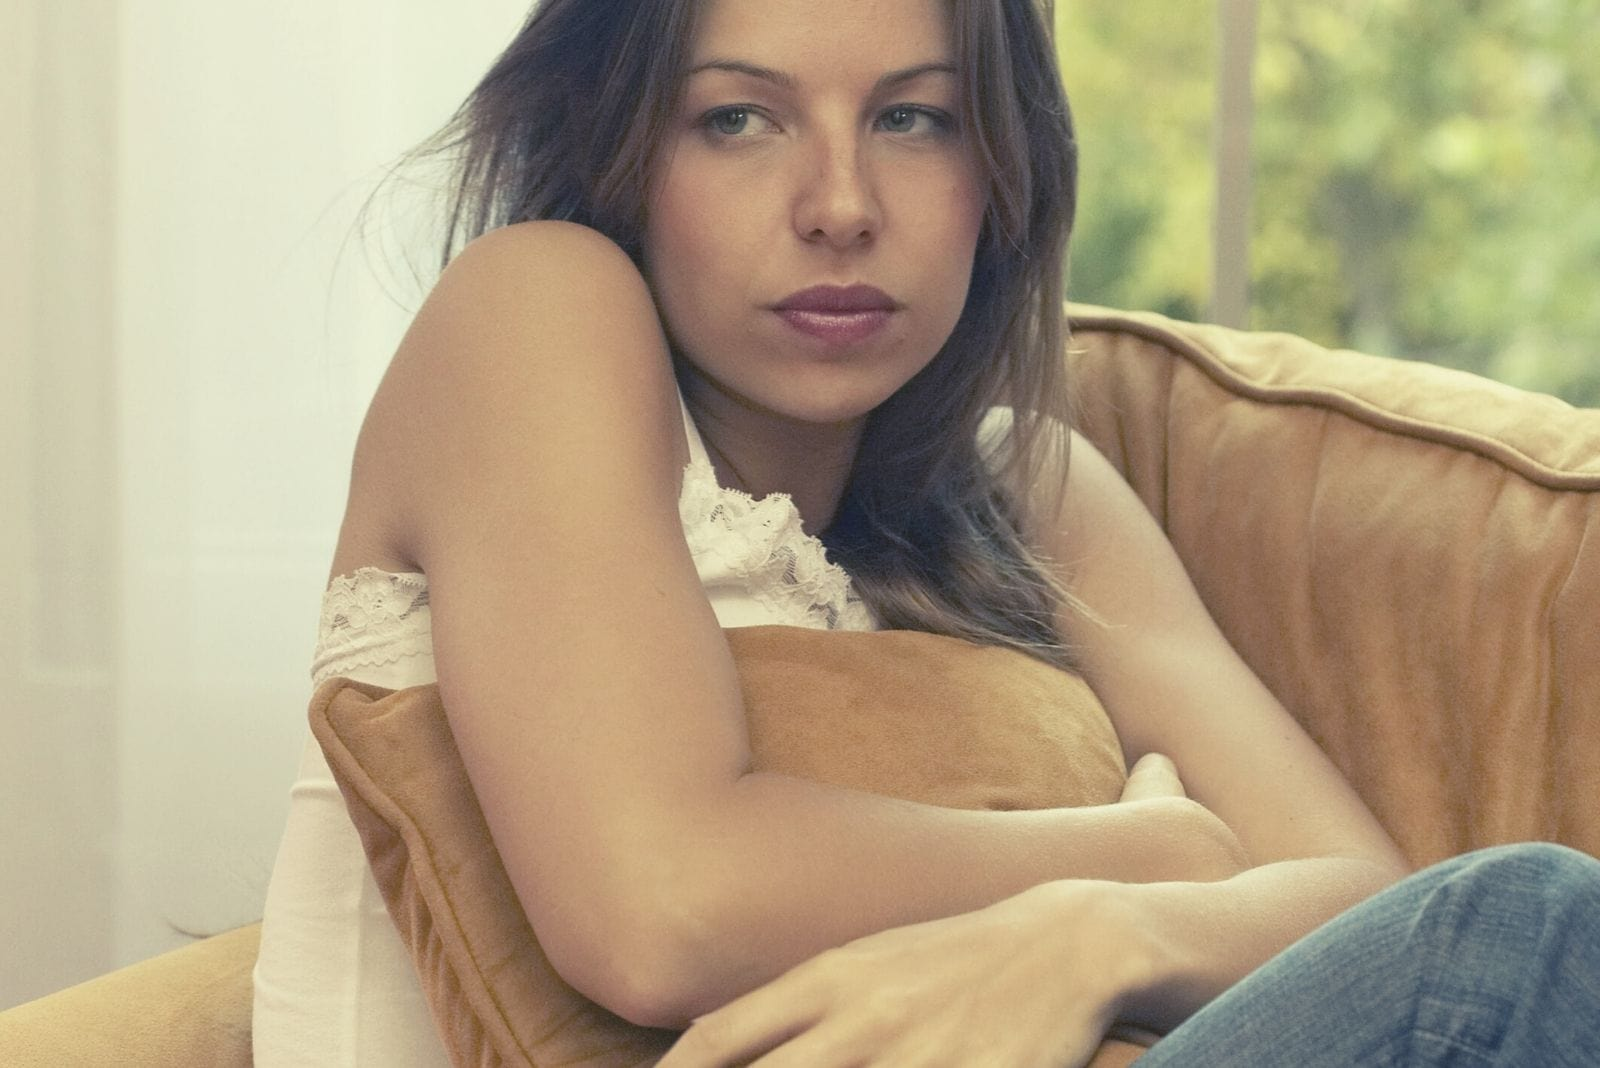 sad insecure woman embracing a pillow and sitting on the couch